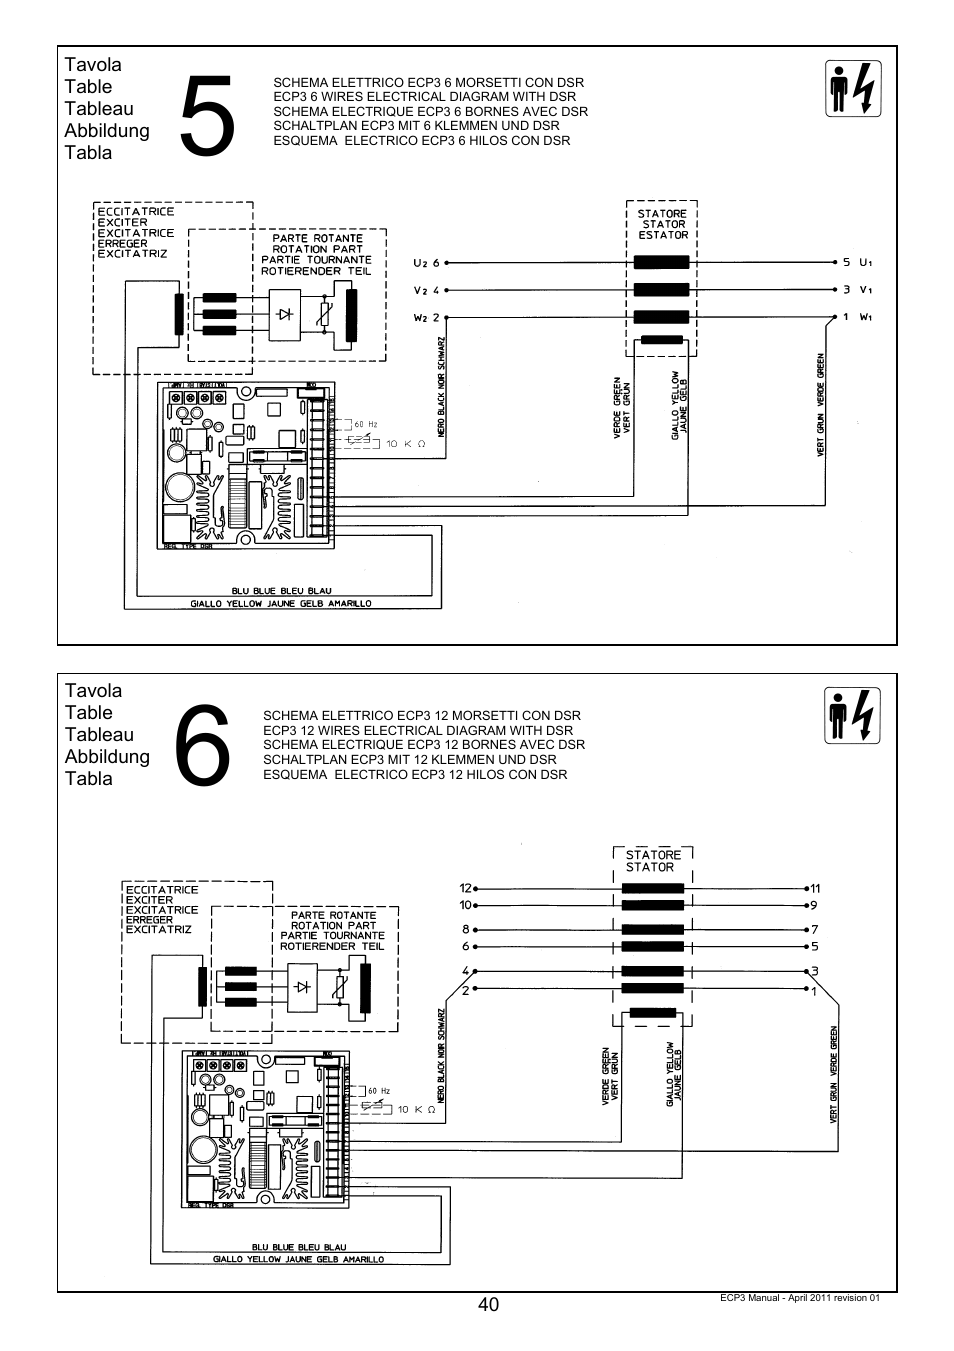 Winco Ecp3 2ln 2 Replaces Eco3 User Manual Page 40 50 Ecp Wiring Diagram